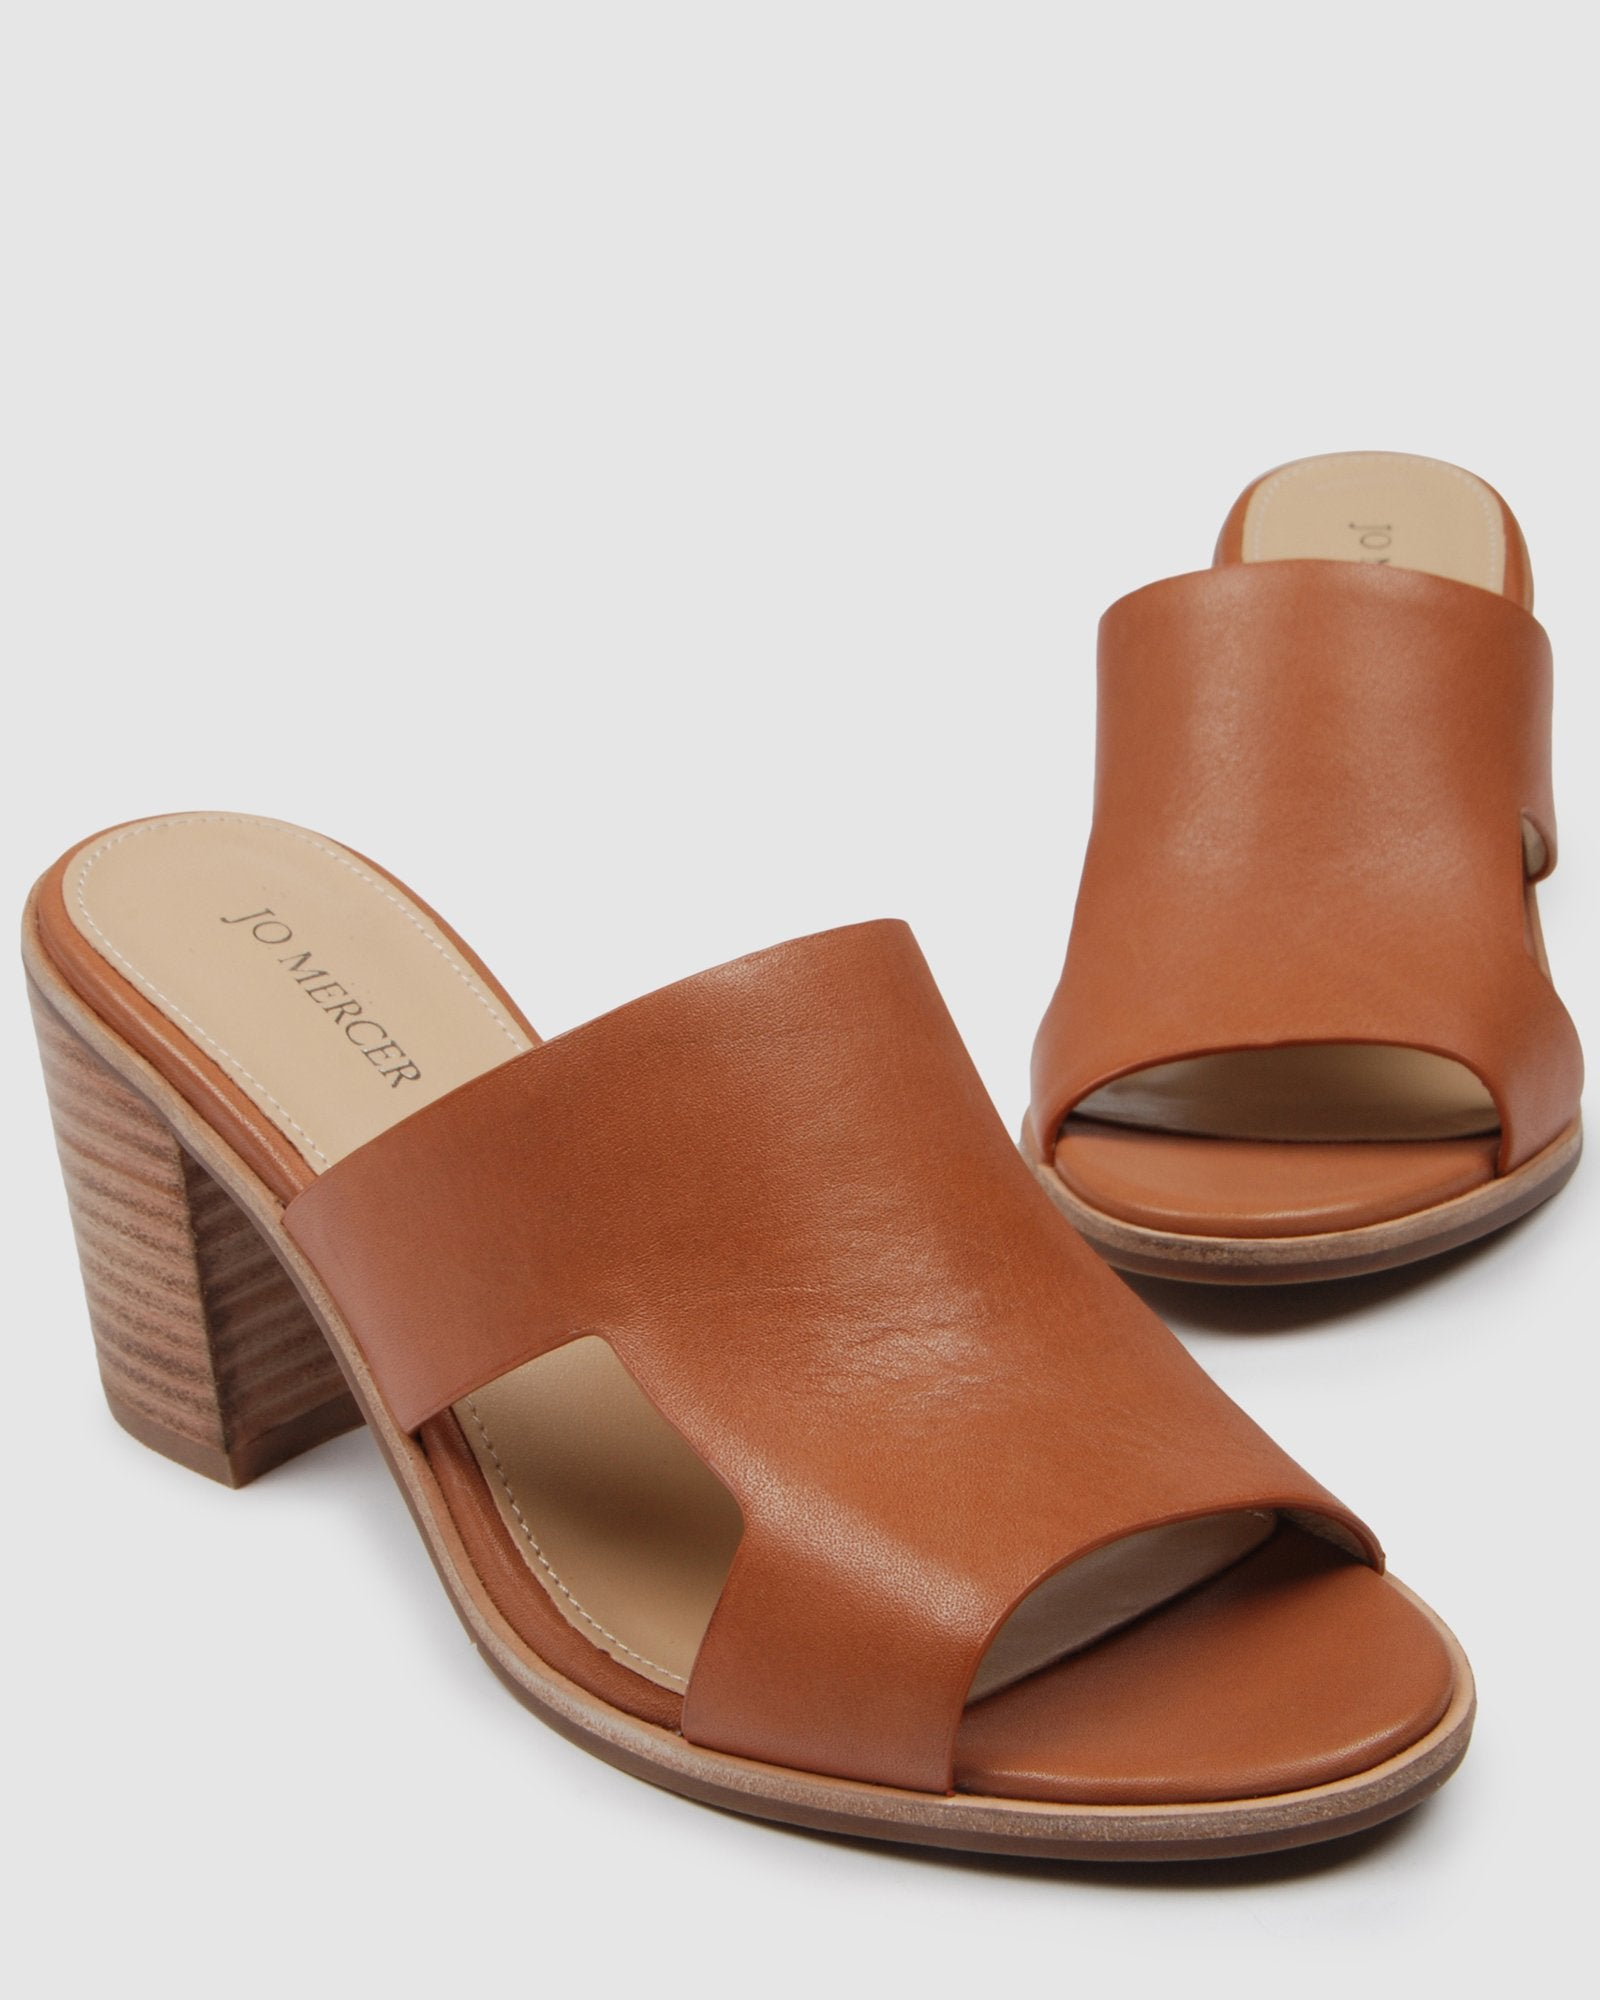 DELILAH MID SANDALS COGNAC LEATHER COGNAC LEATHER